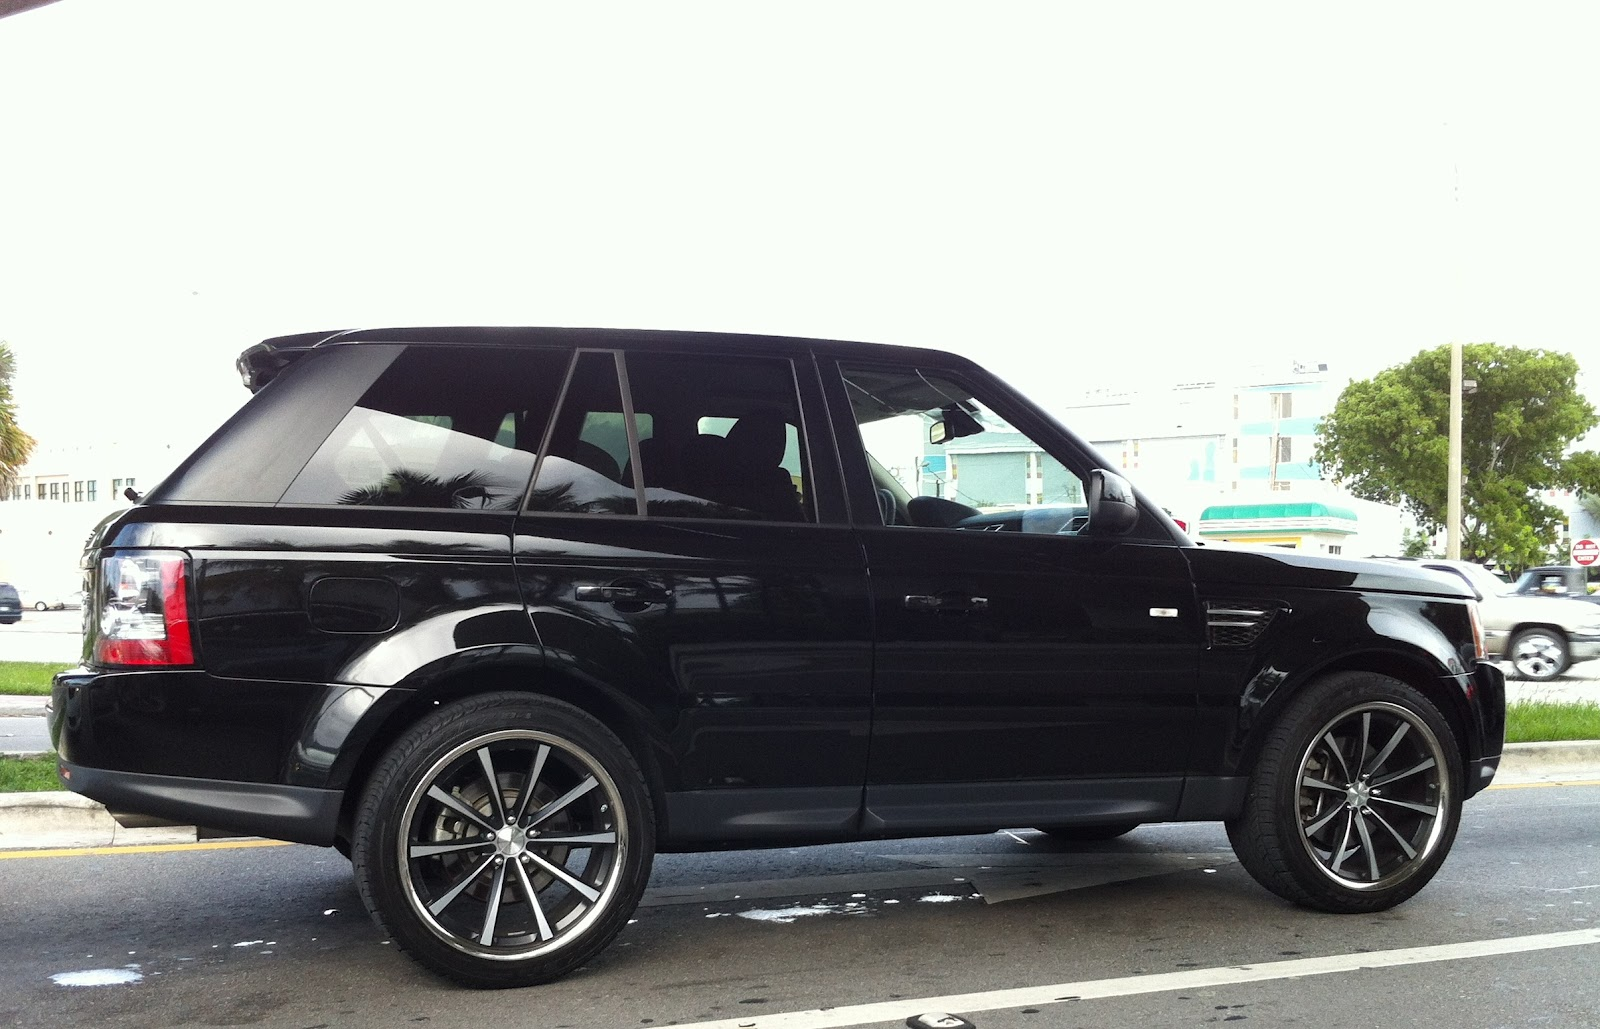 Black Range Rover sport Supercharged with custom rims Car Pictures Wallpapers Backgrounds